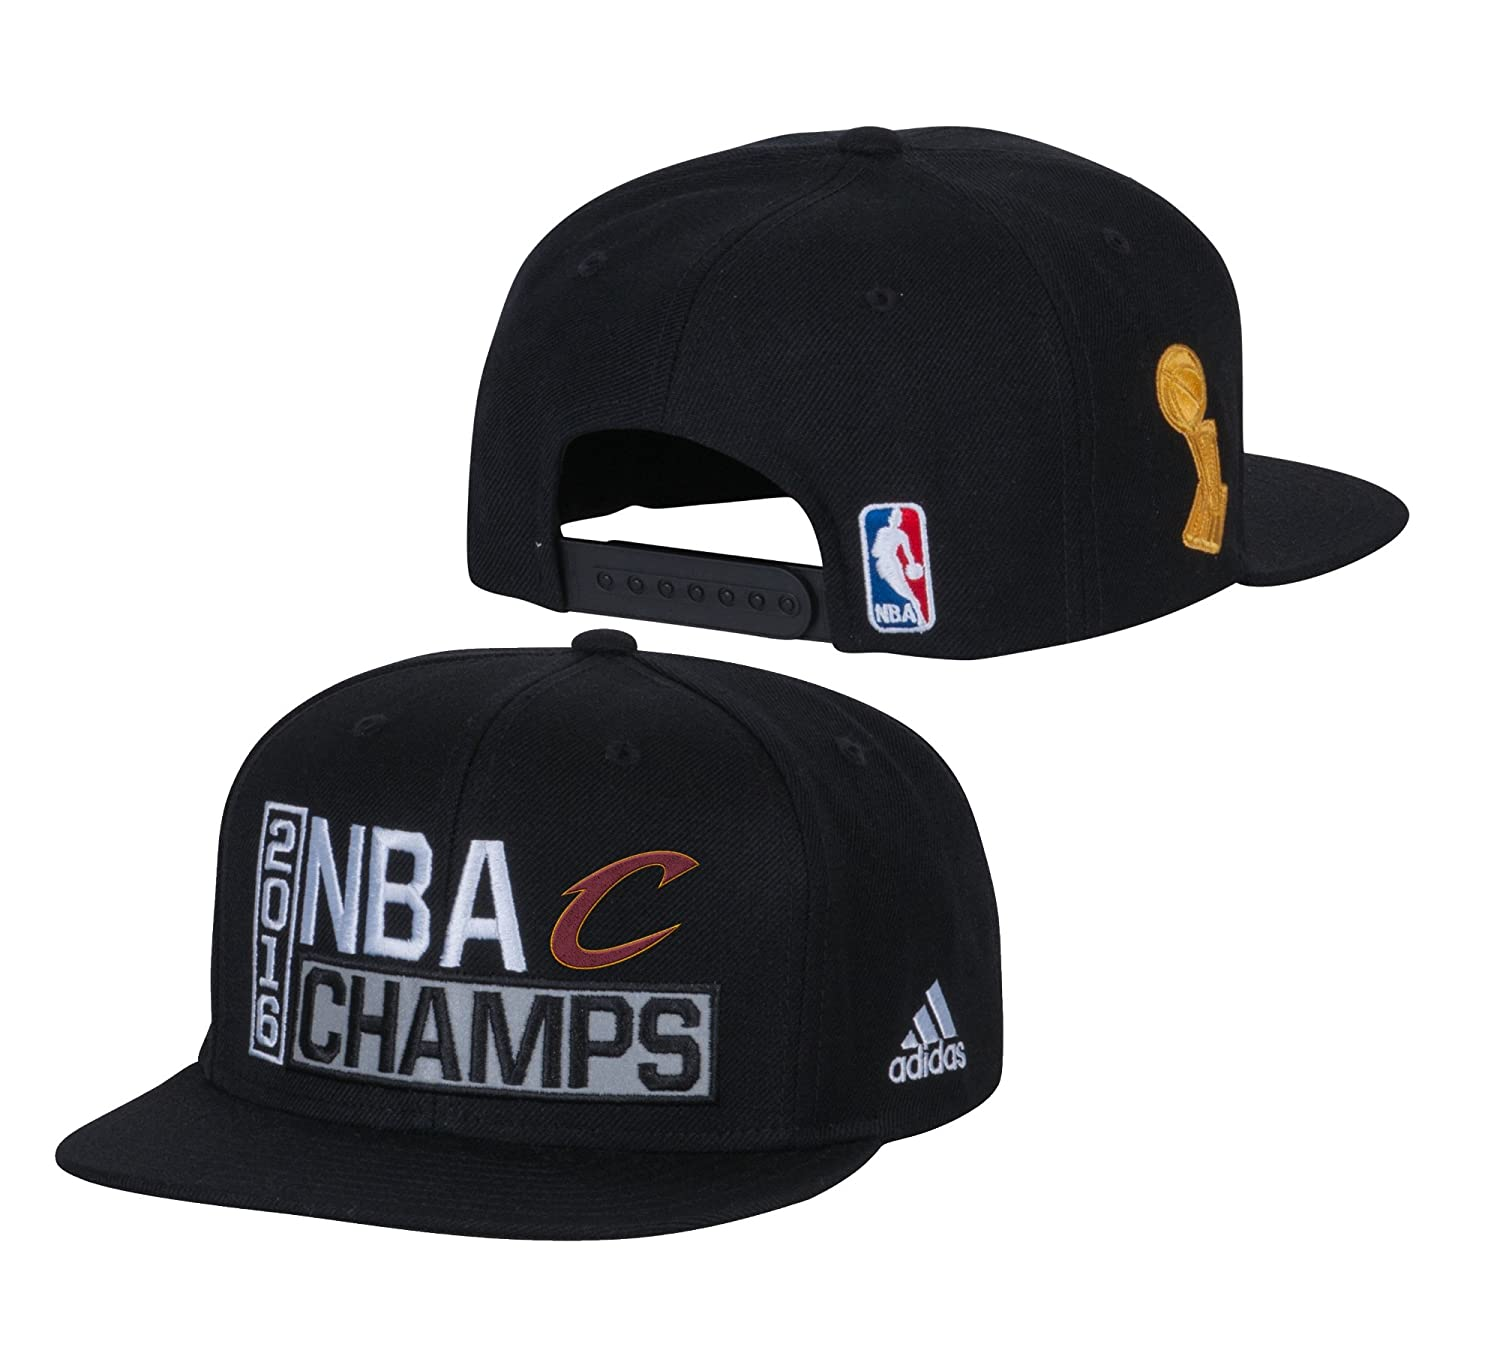 Amazon Cleveland Cavaliers Black 2016 NBA Finals Champions Locker Room Champs Snapback Hat Cap Sports Outdoors